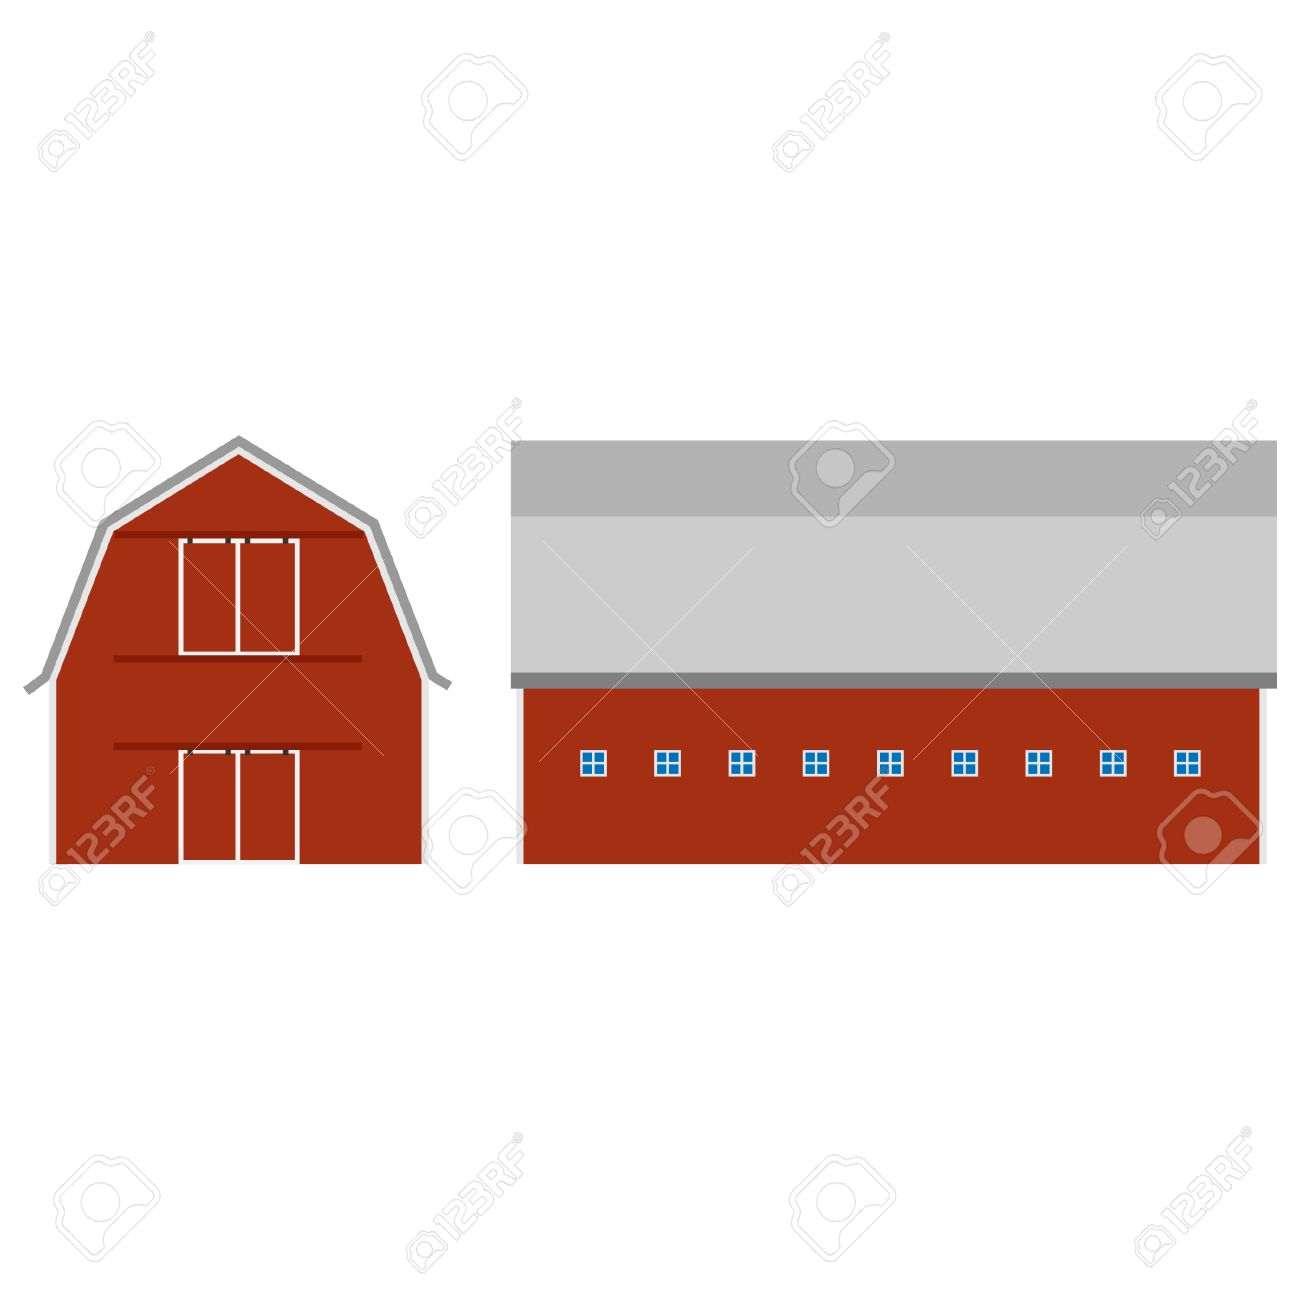 red barn doors clip art. old red barn ot farm house, door, raster isolated, farming stock photo doors clip art